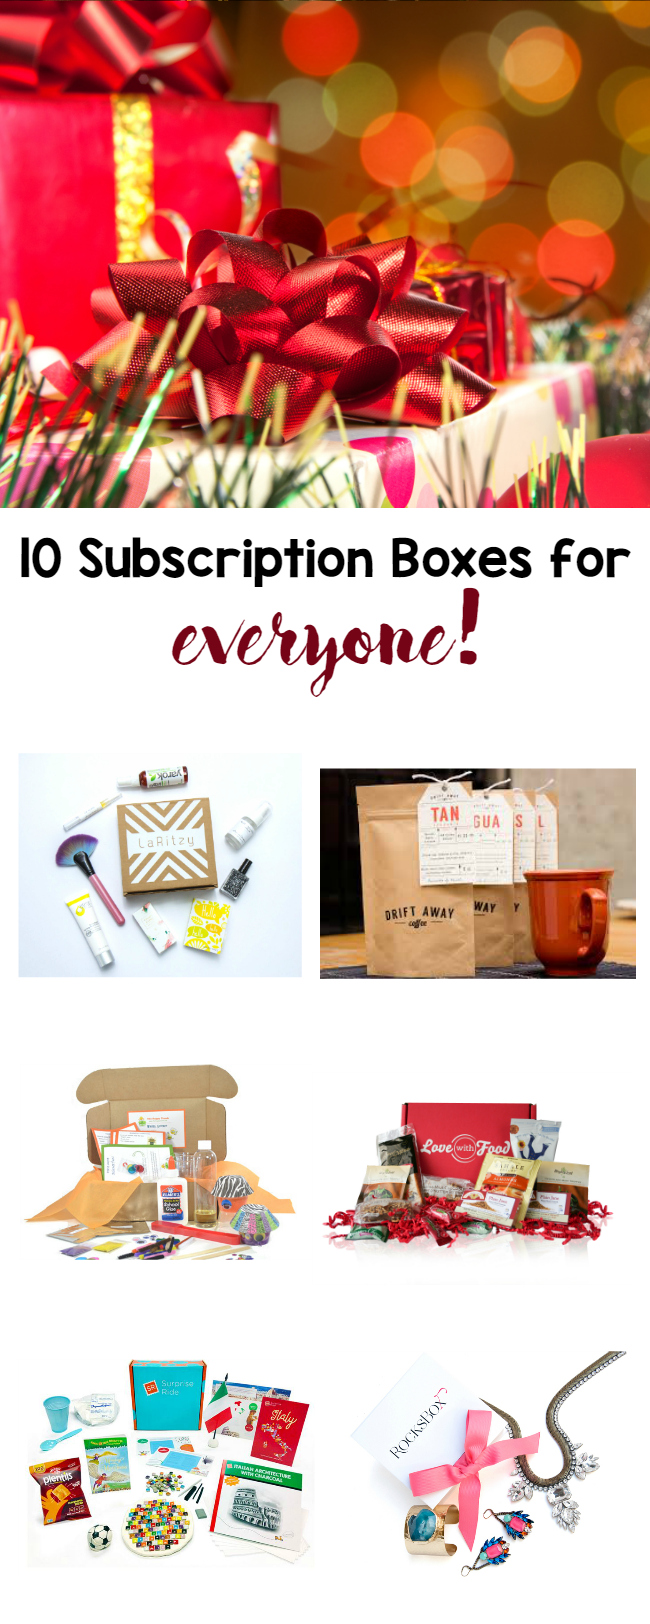 10 subscription boxes for everyone